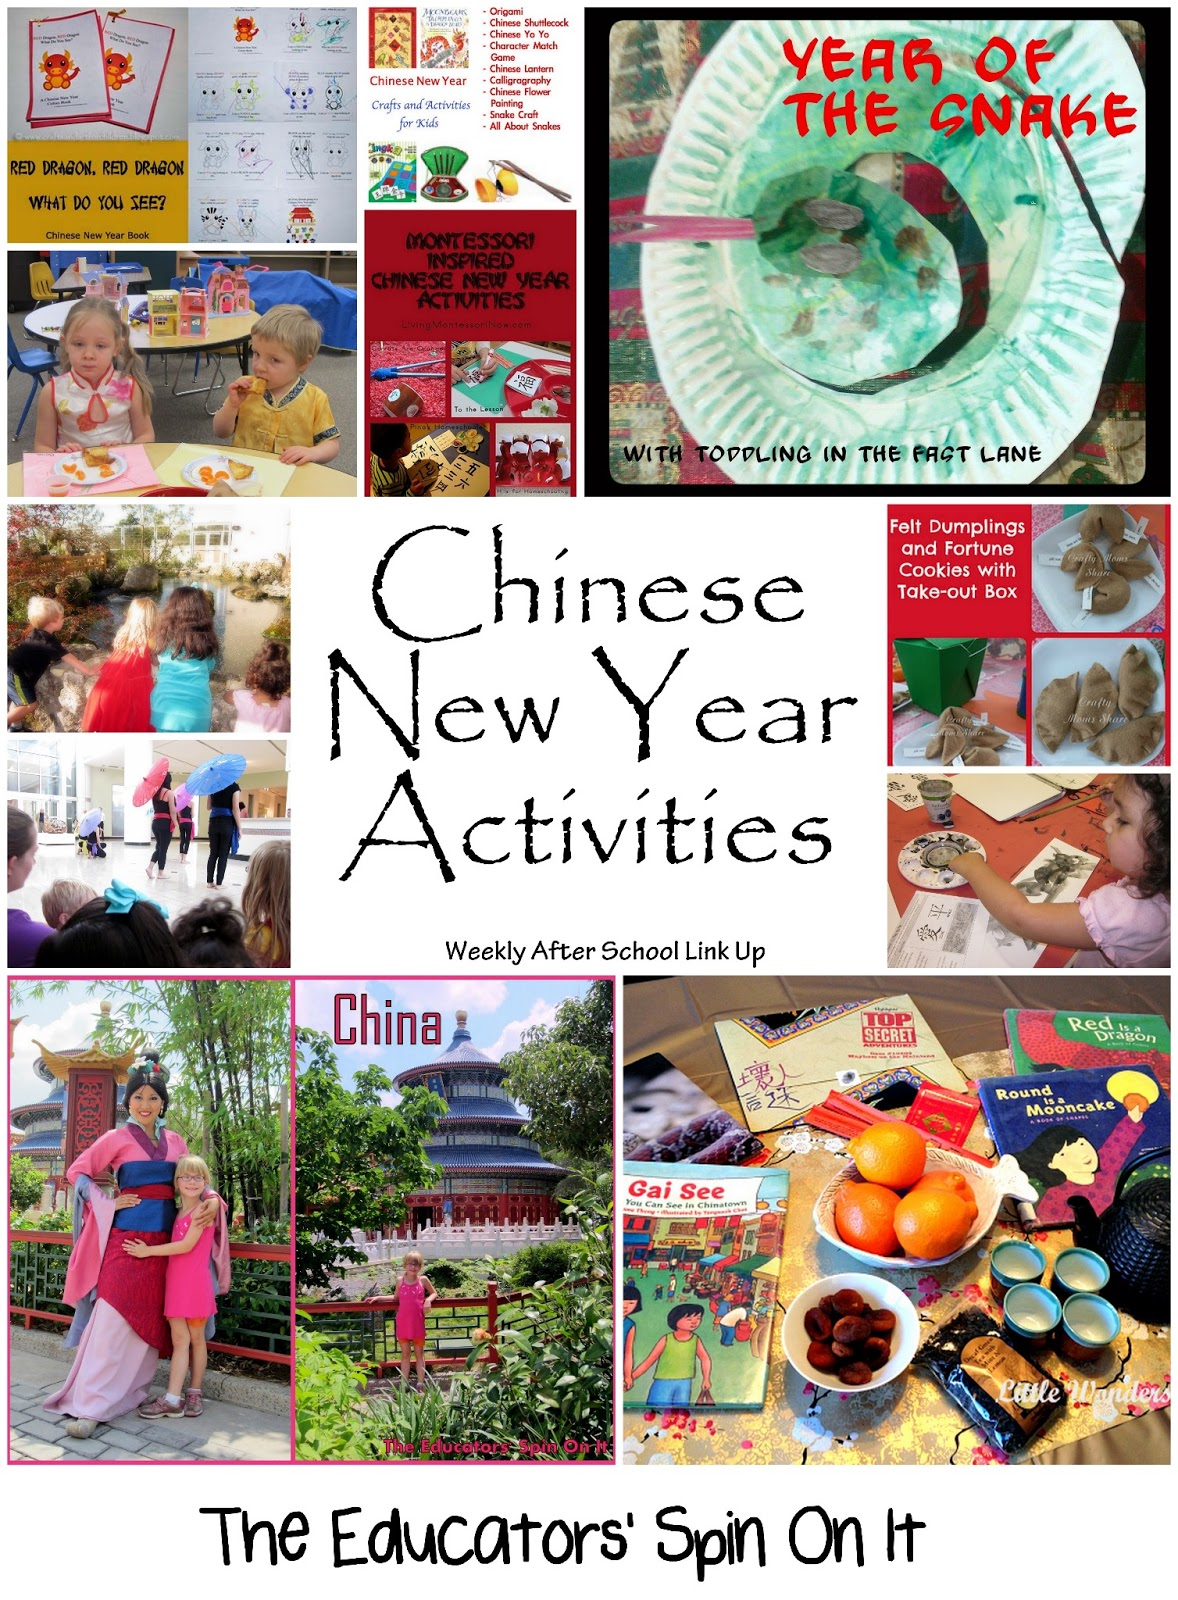 chinese new year activities for kids featured at the educators spin on it - Chinese New Year Activities